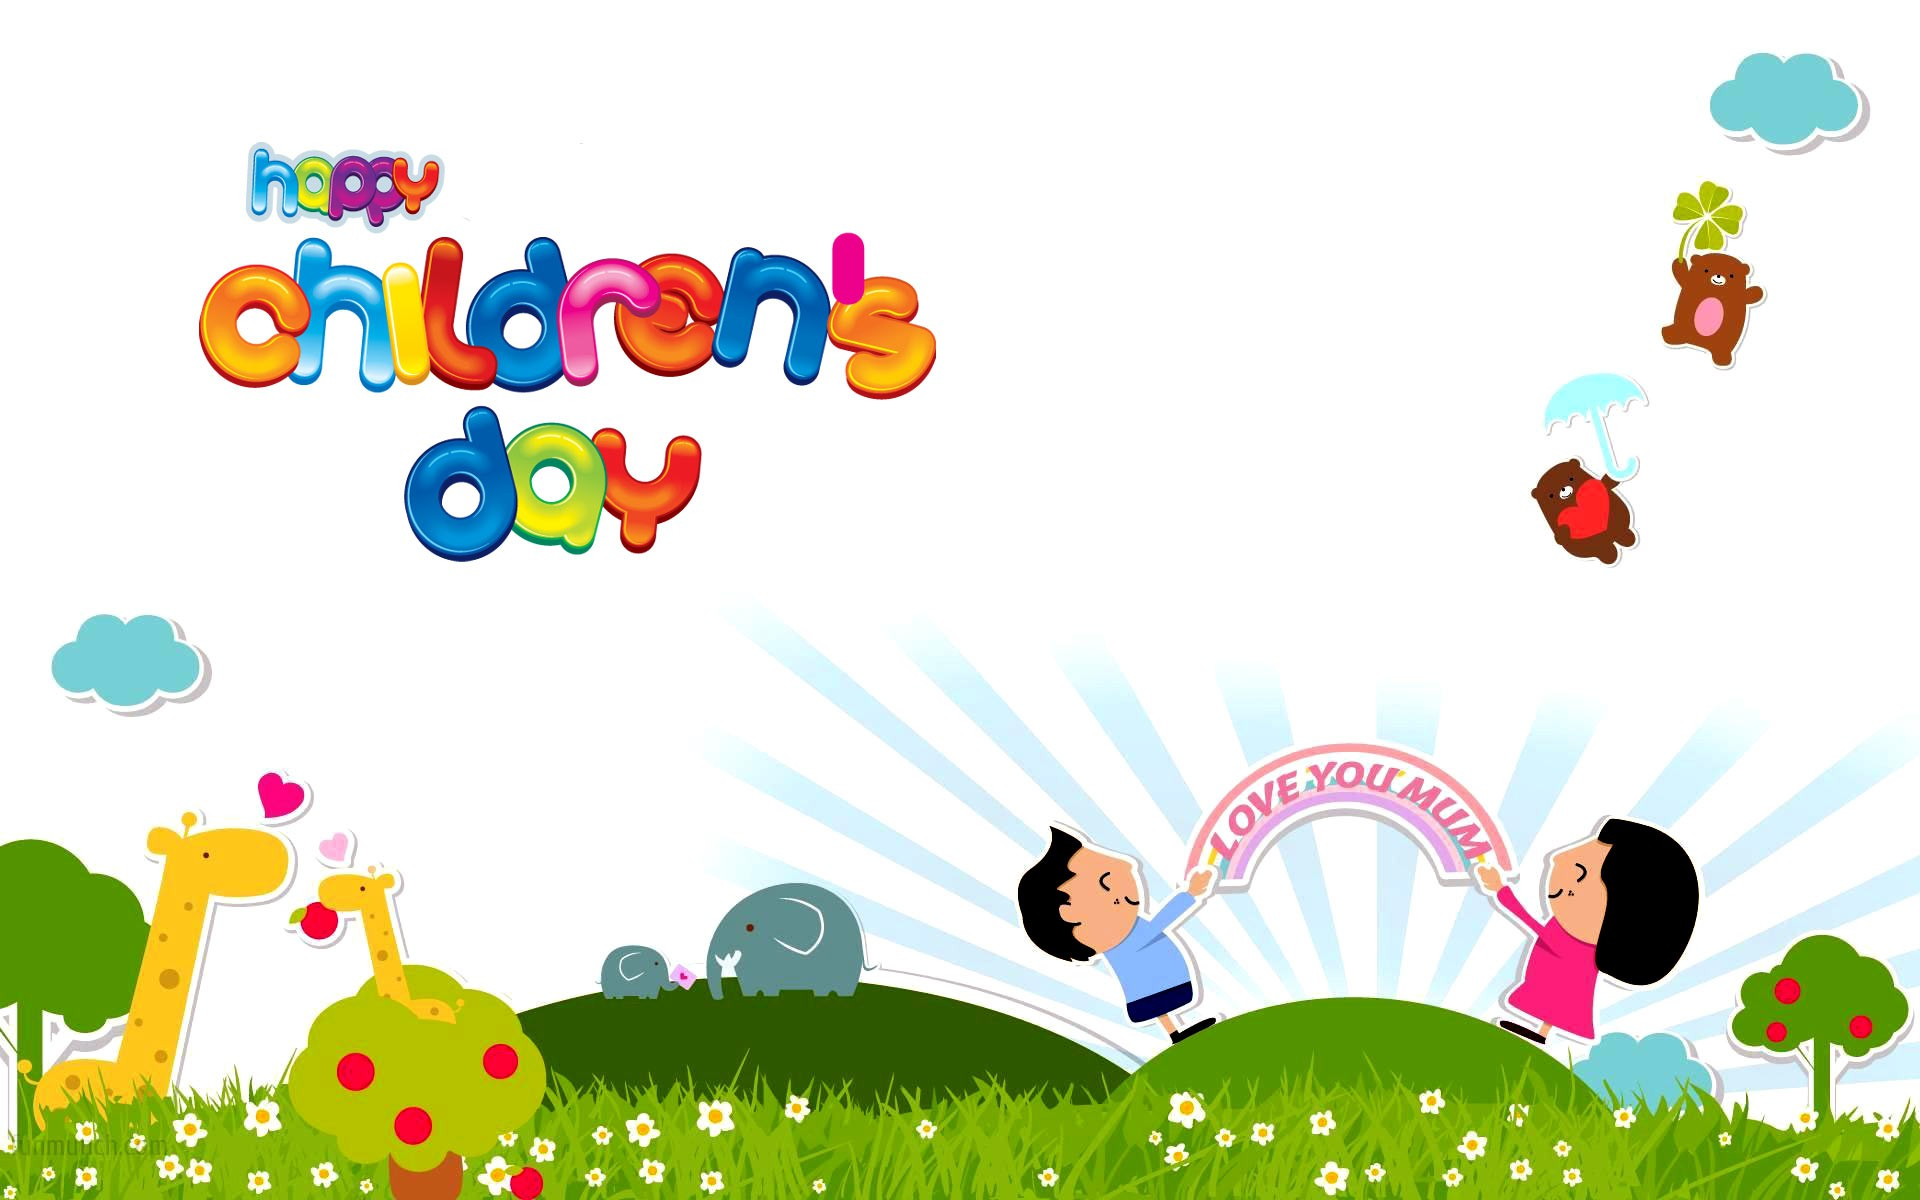 Happy childrens day images hd wallpapers and photos for Kids wallpaper